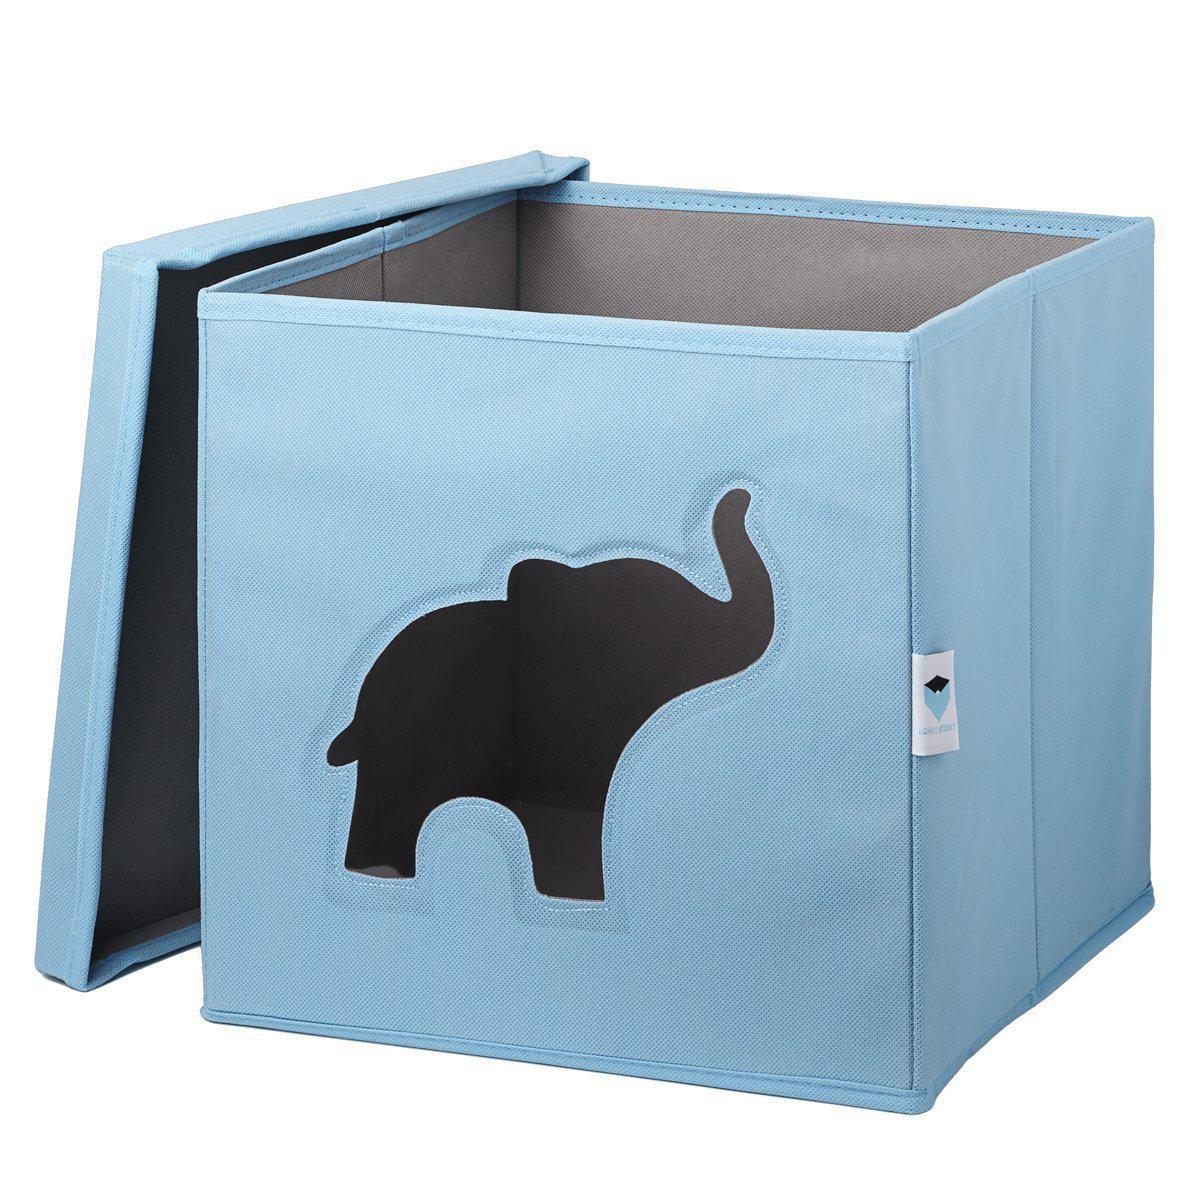 spielzeugkiste elefant hellblau grau ordnung im. Black Bedroom Furniture Sets. Home Design Ideas